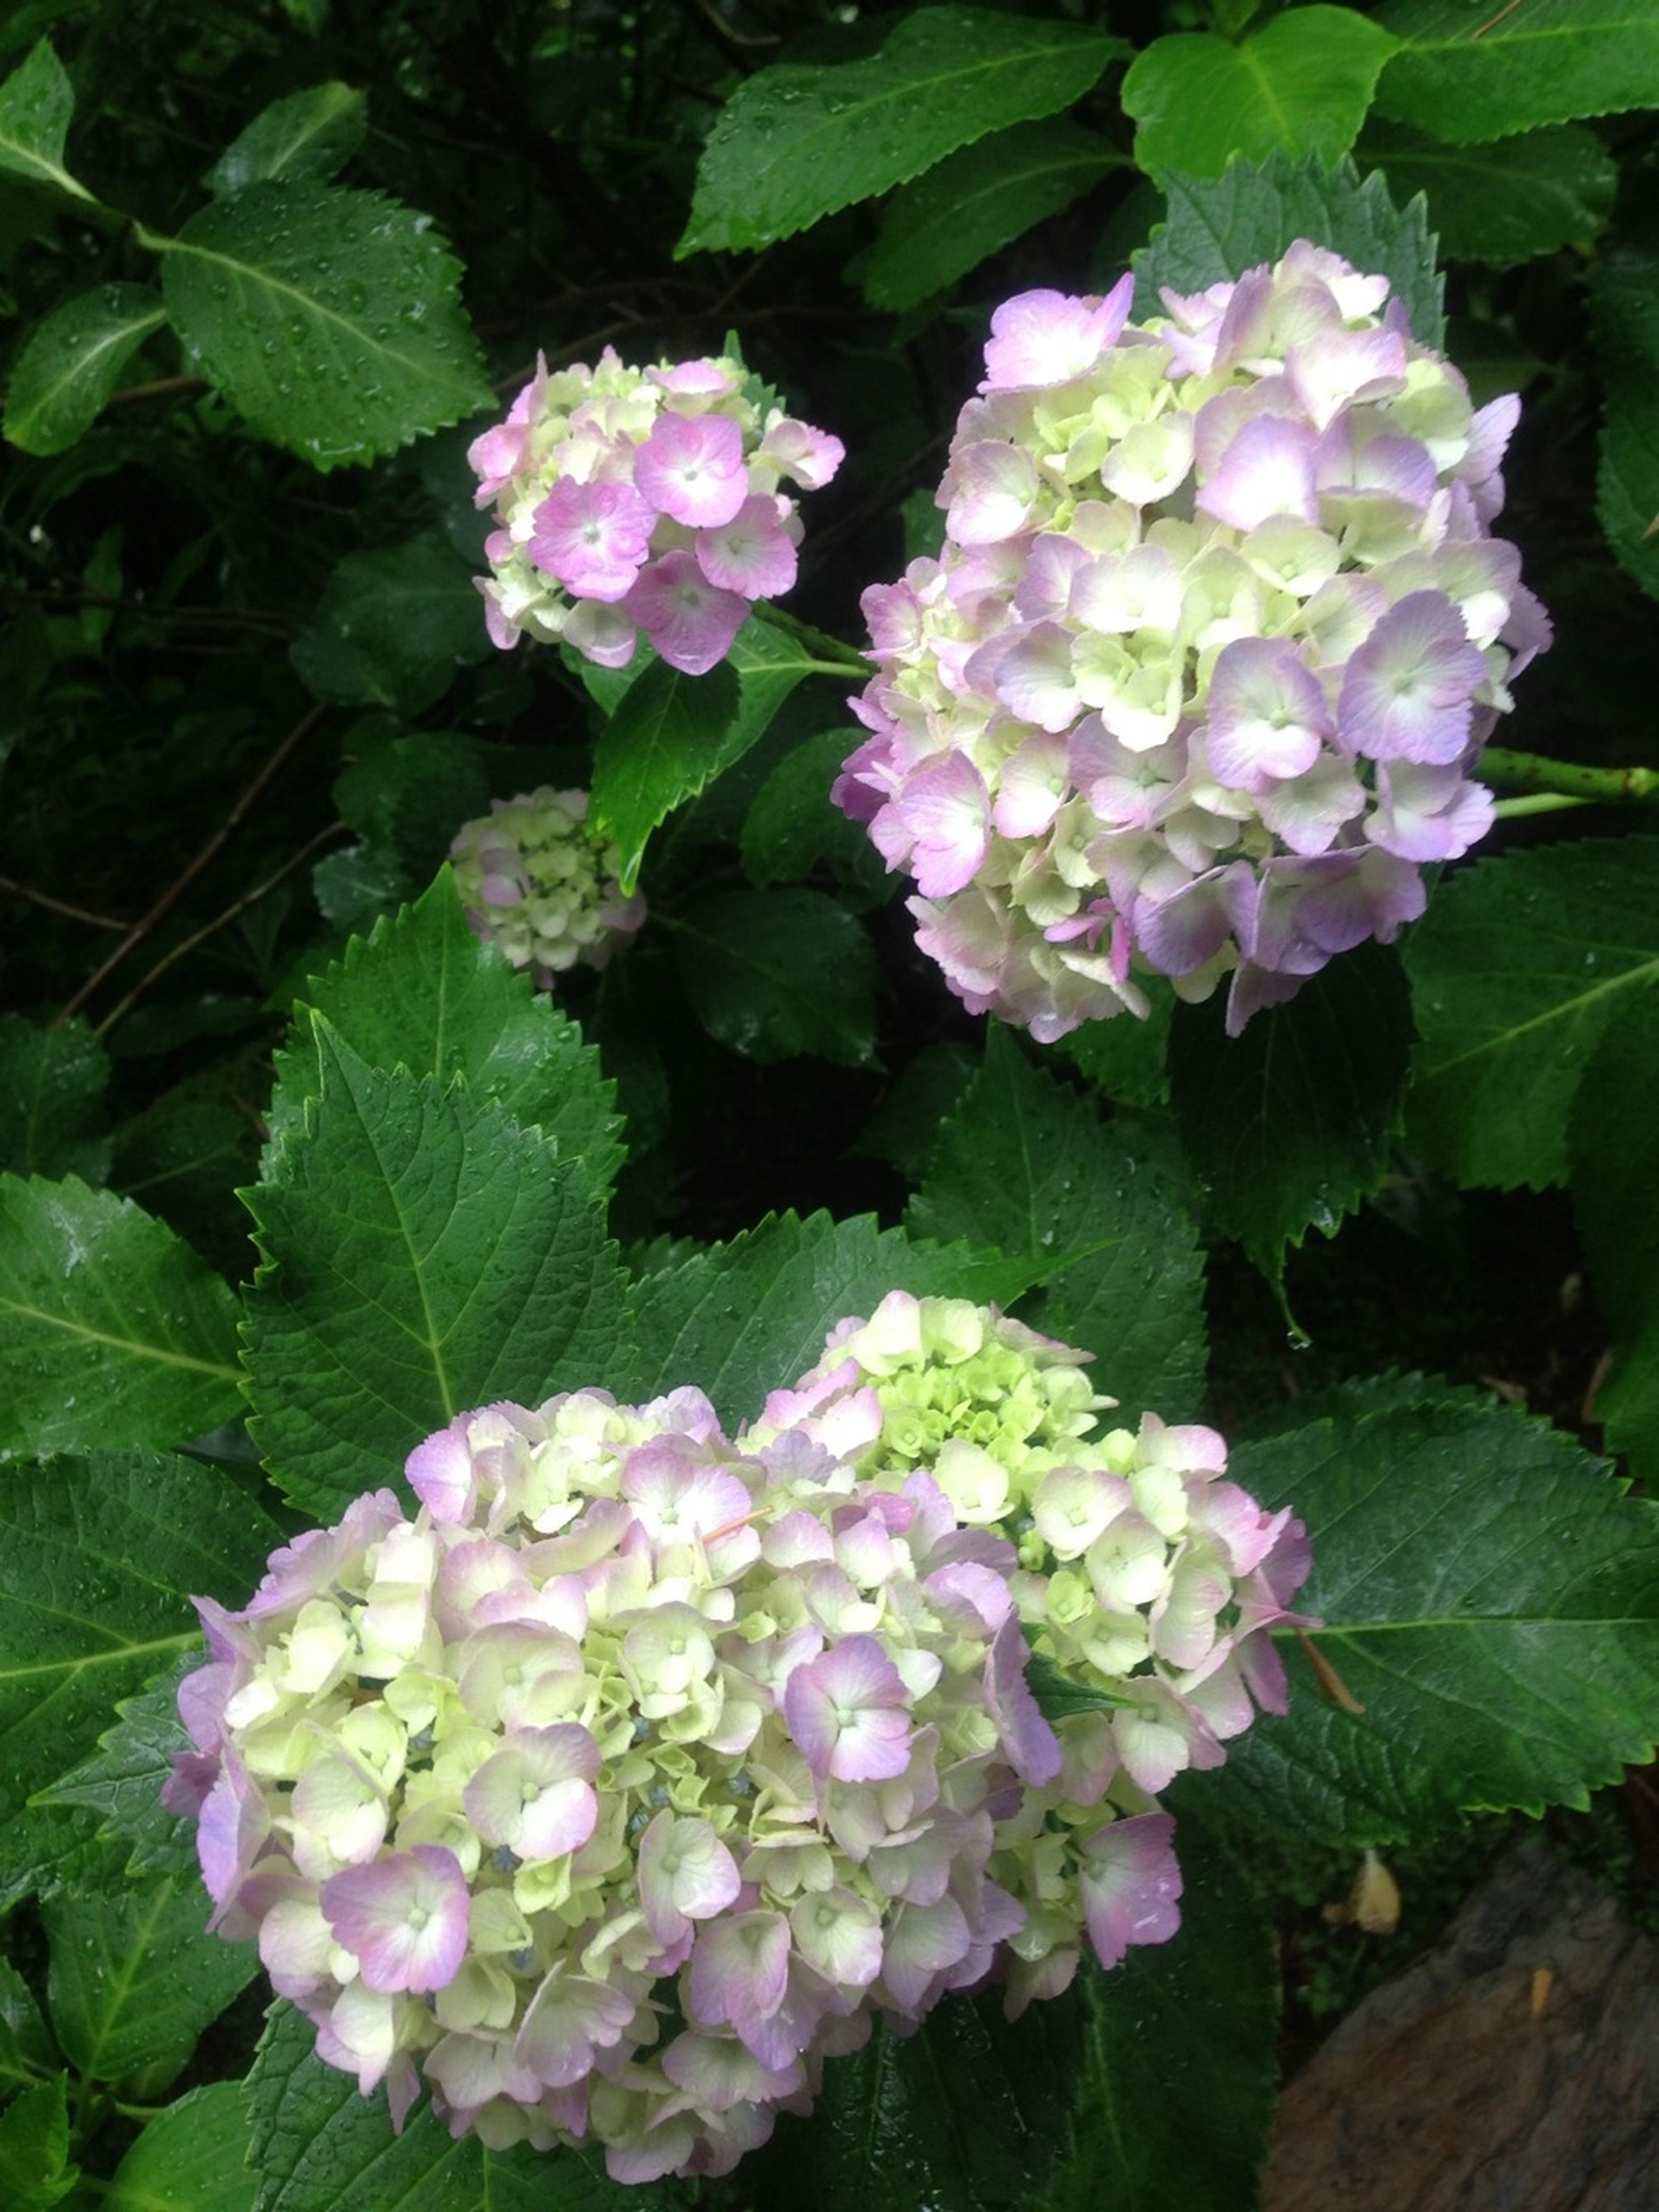 flower, freshness, fragility, petal, growth, beauty in nature, flower head, leaf, blooming, nature, pink color, plant, high angle view, in bloom, green color, blossom, close-up, hydrangea, park - man made space, outdoors